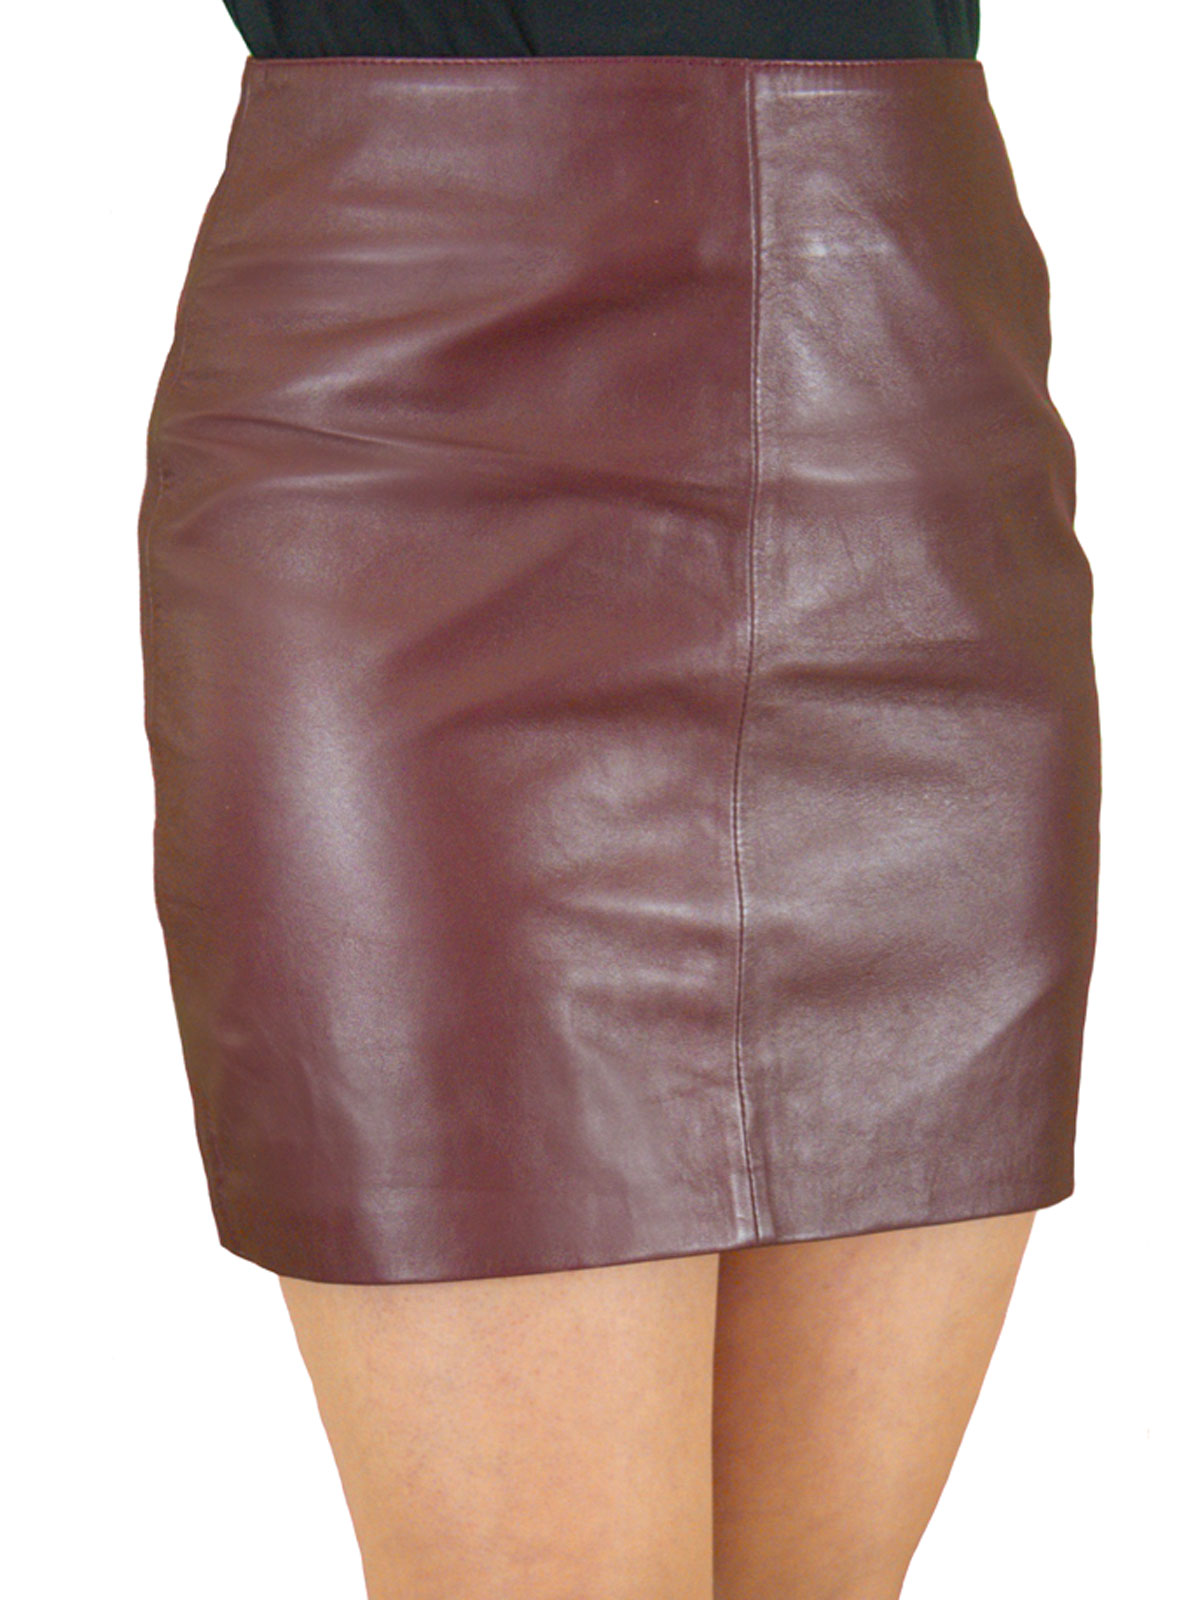 Soft Leather Mini Skirt with Full Rear Zip - Tout Ensemble